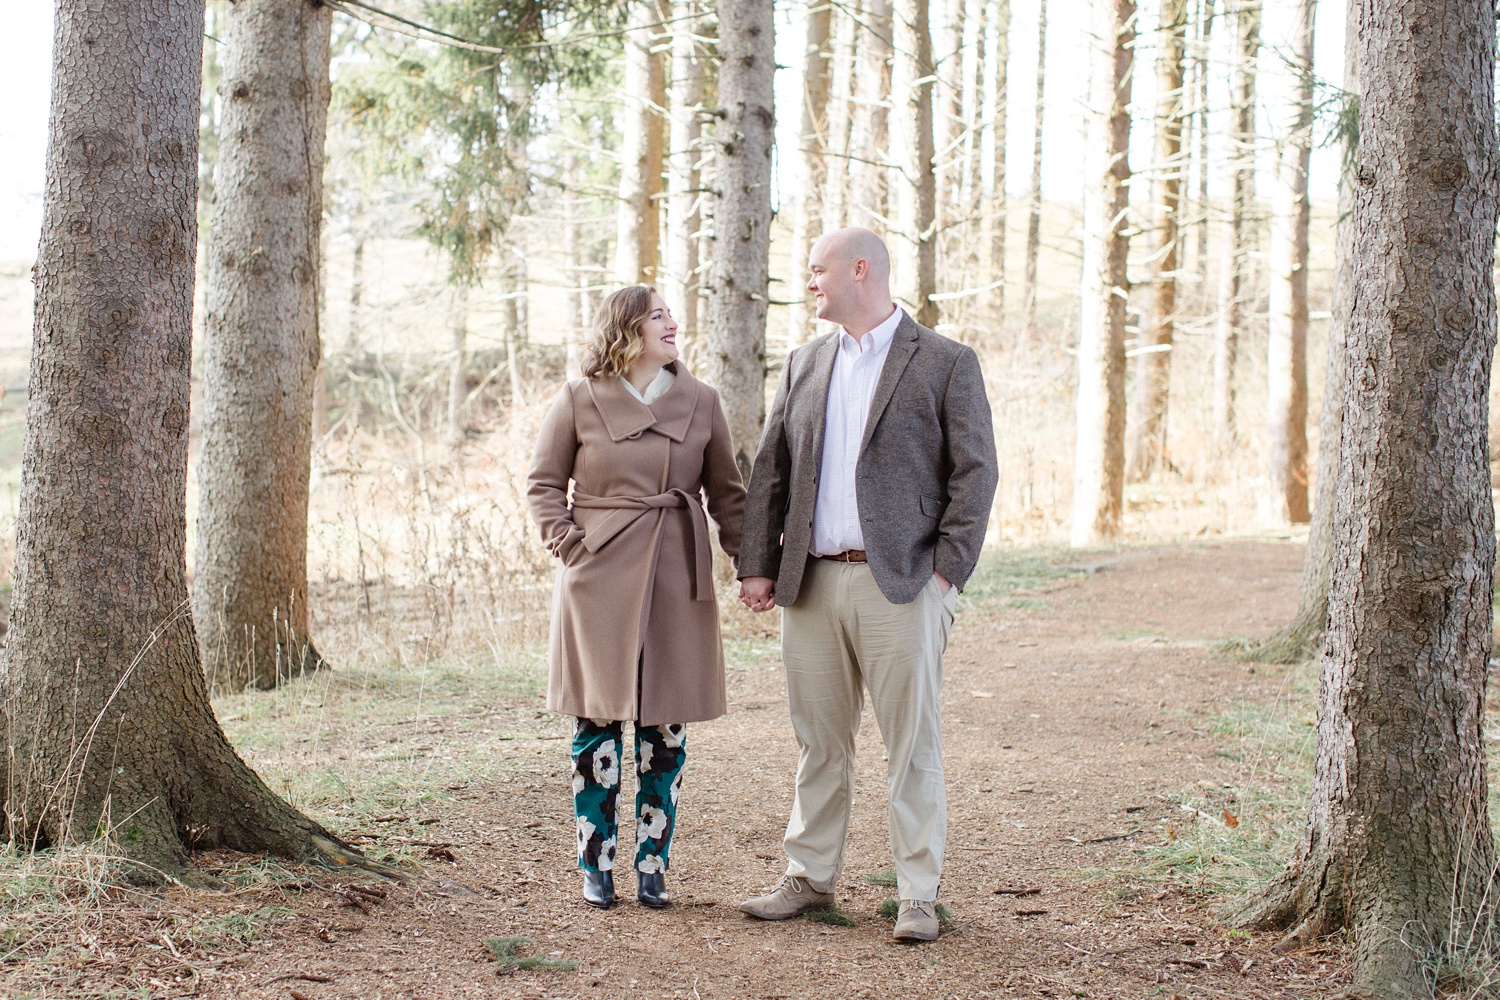 Clarks Summit PA Engagement Session Anniversary Photos_0003.jpg